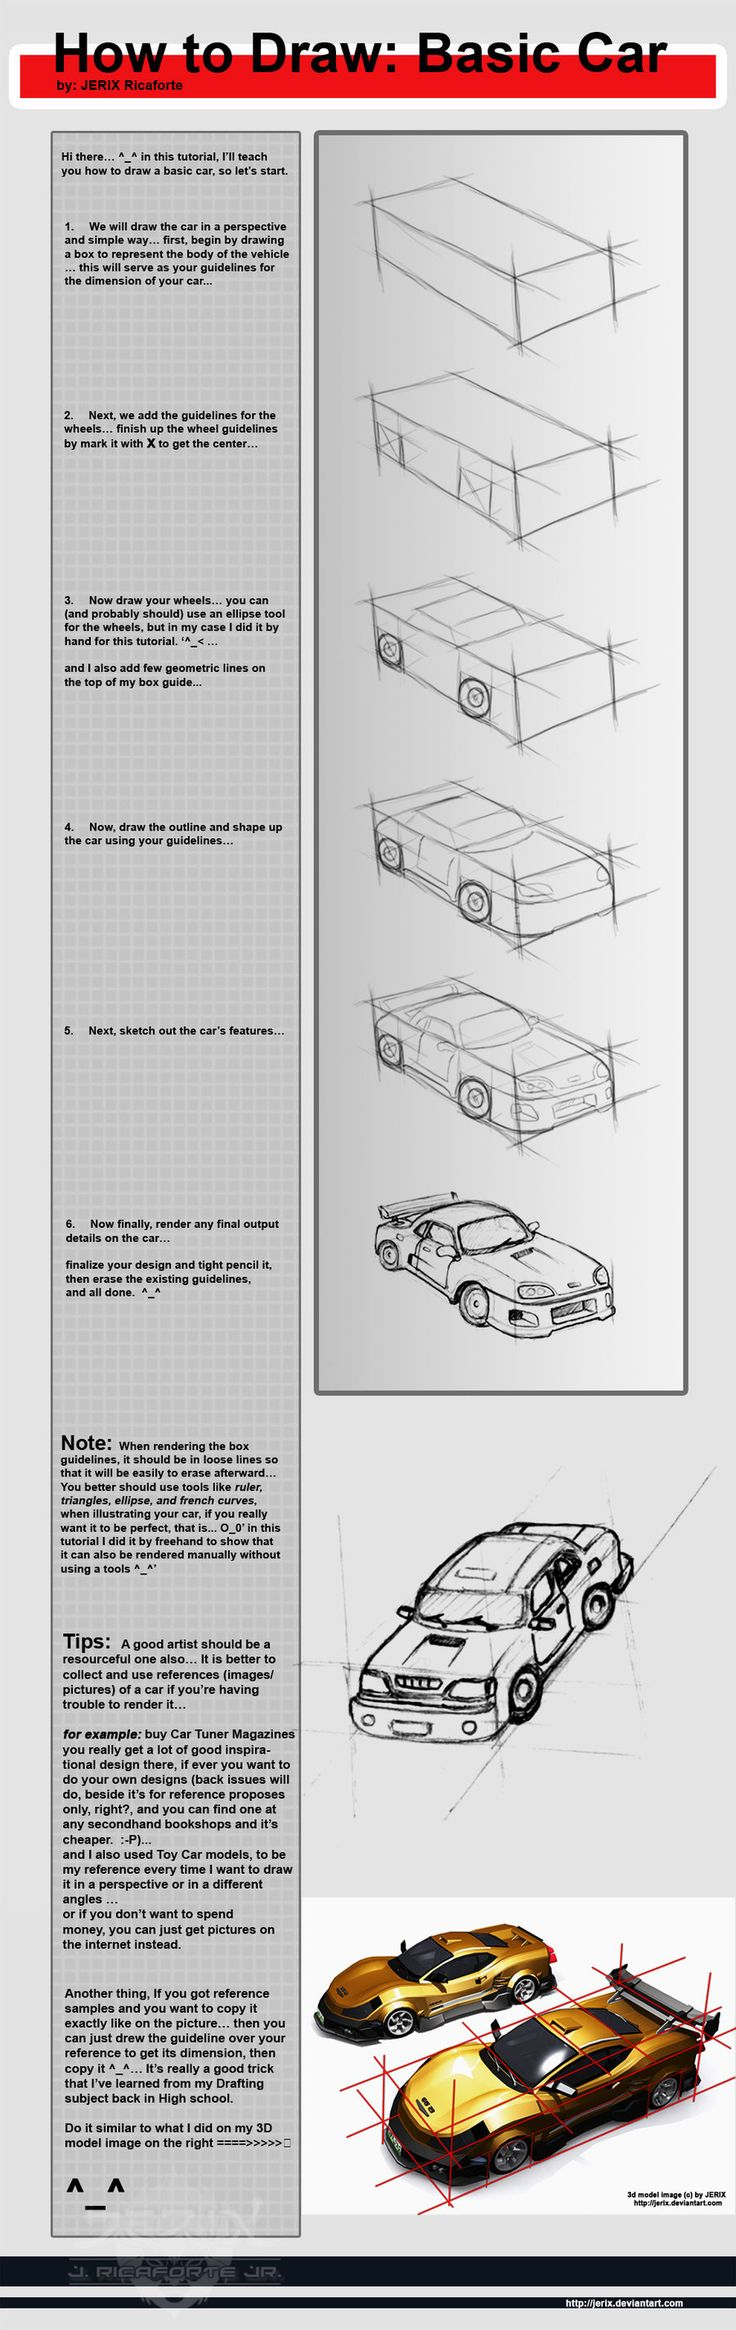 How to draw basic Car O_o by jerix.deviantart.com on @deviantART